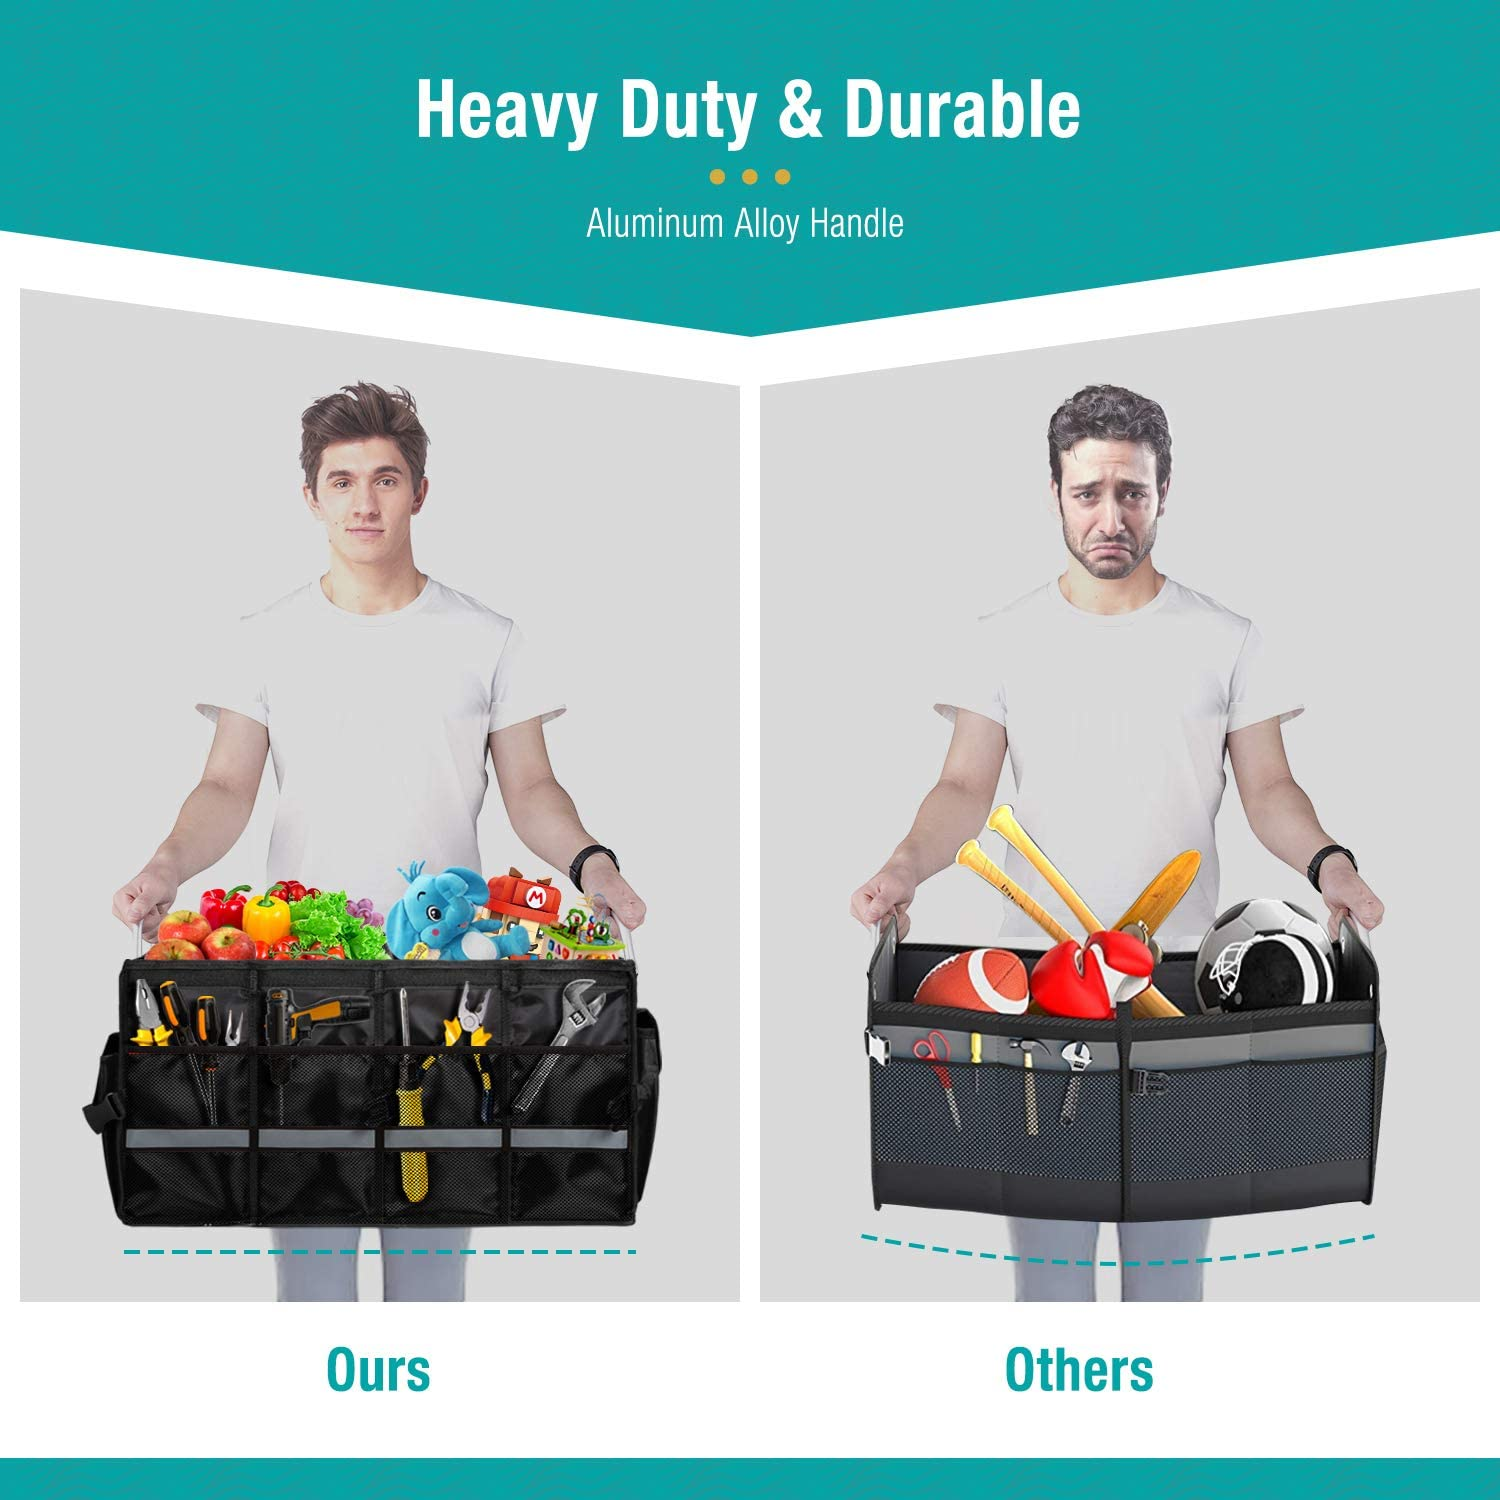 Waterproof Black SOLOFISH Car Trunk Organizer Collapsible Portable Boot Tidy with Aluminium Alloy Handle for Heavy Duty Carry